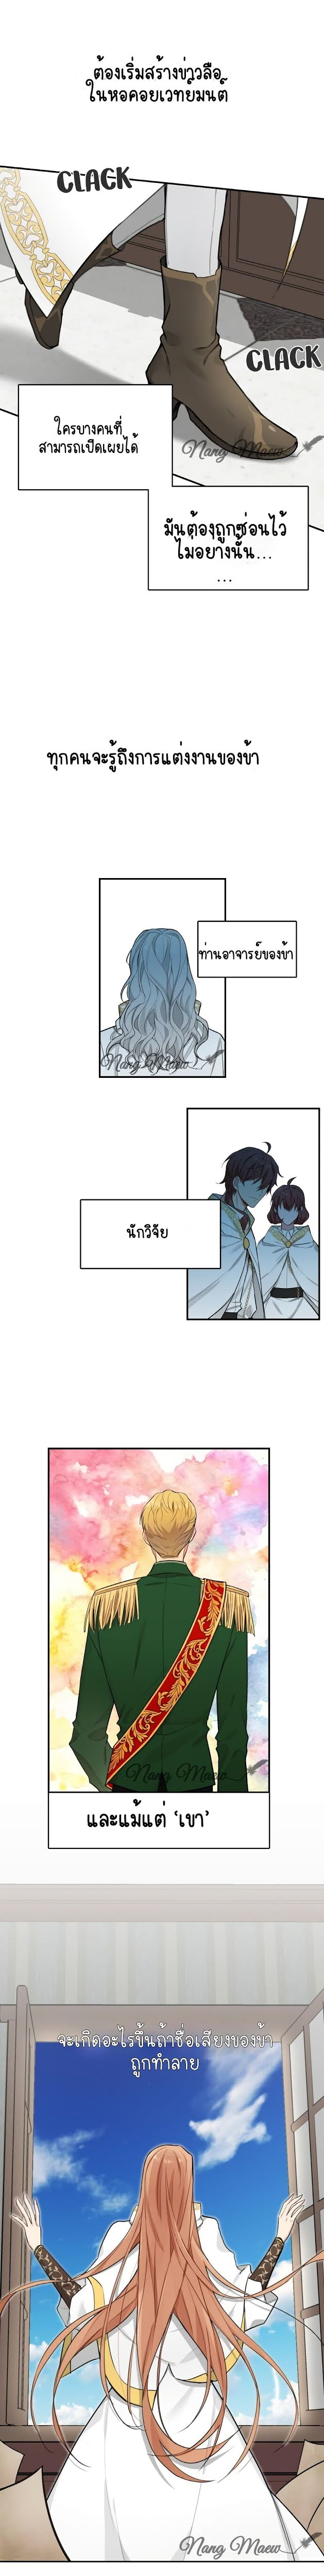 The Newlywed Life of a Witch and a Dragon - หน้า 9